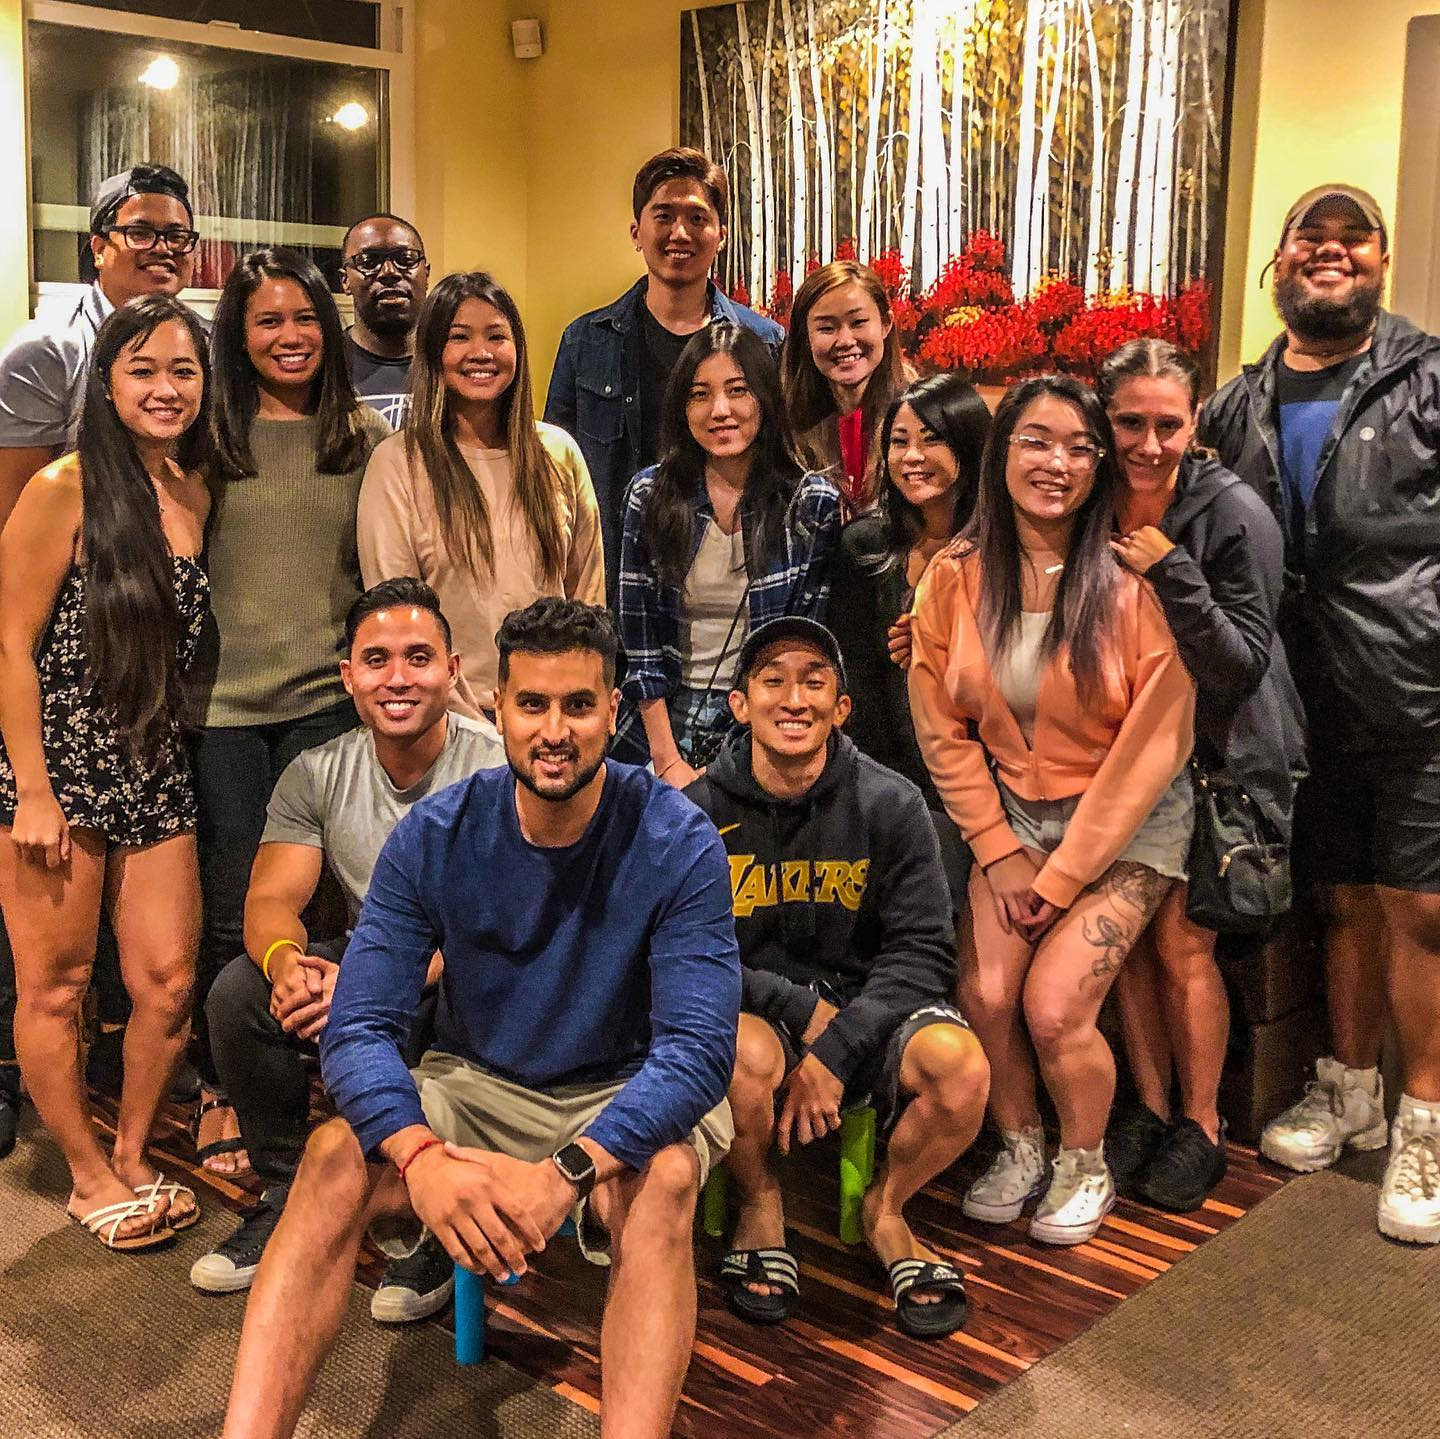 UH Hilo students enjoy their time together.